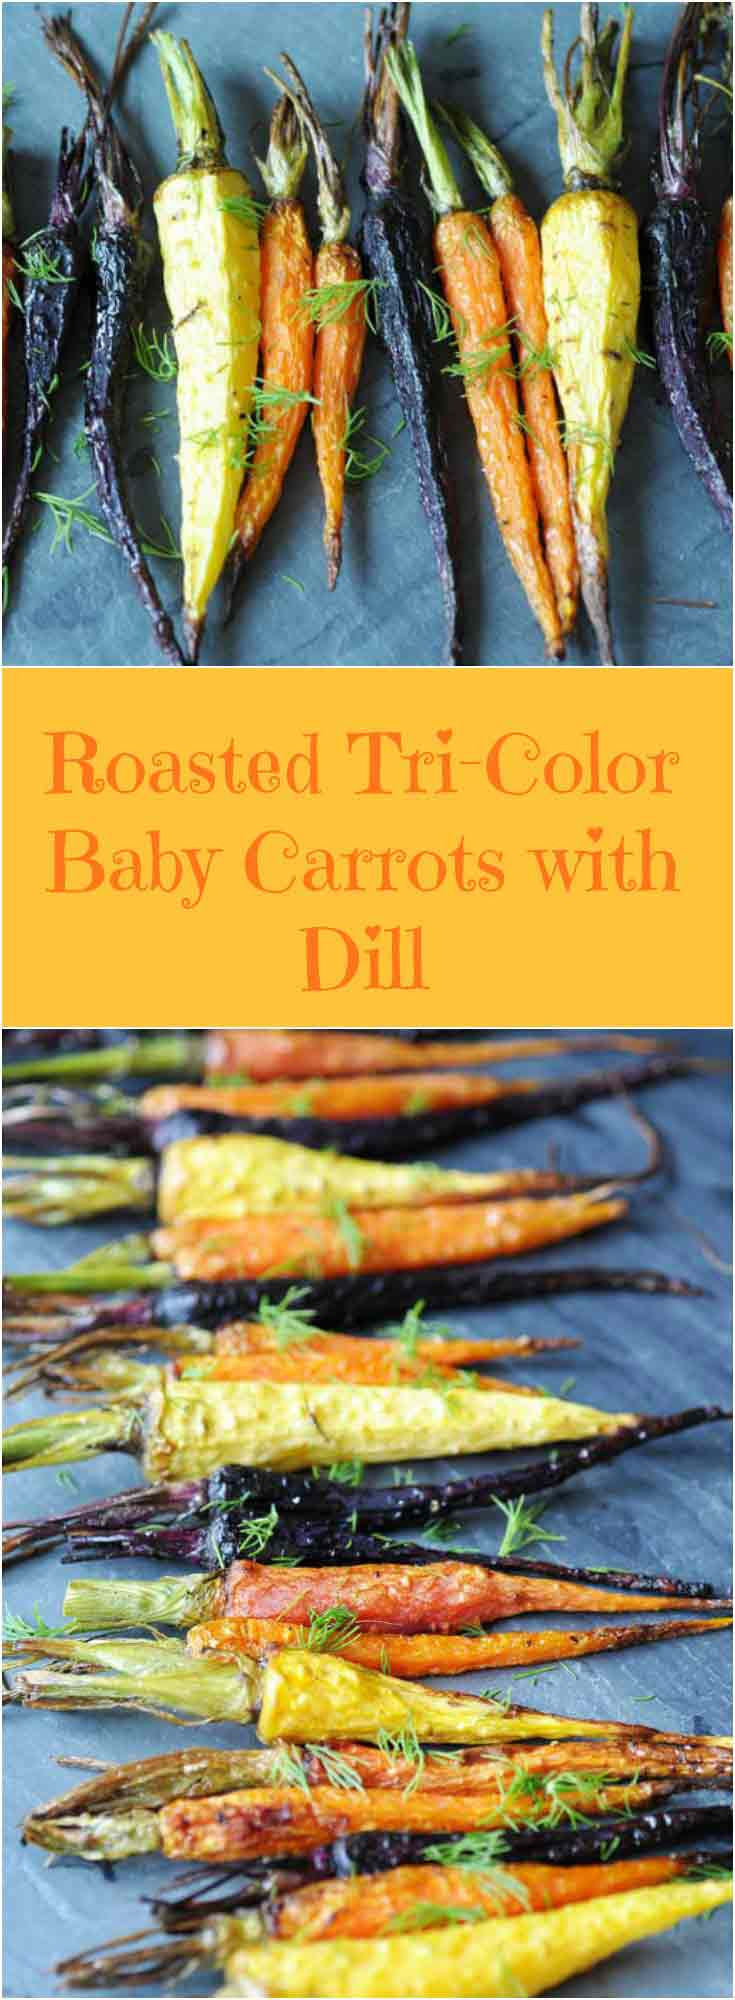 Roasted Tri-Color Baby Carrots with Dill! This recipe is for those who love tender and savory baby carrots with the fresh taste of dill. Easy, fast, and delicious. www.veganosity.com